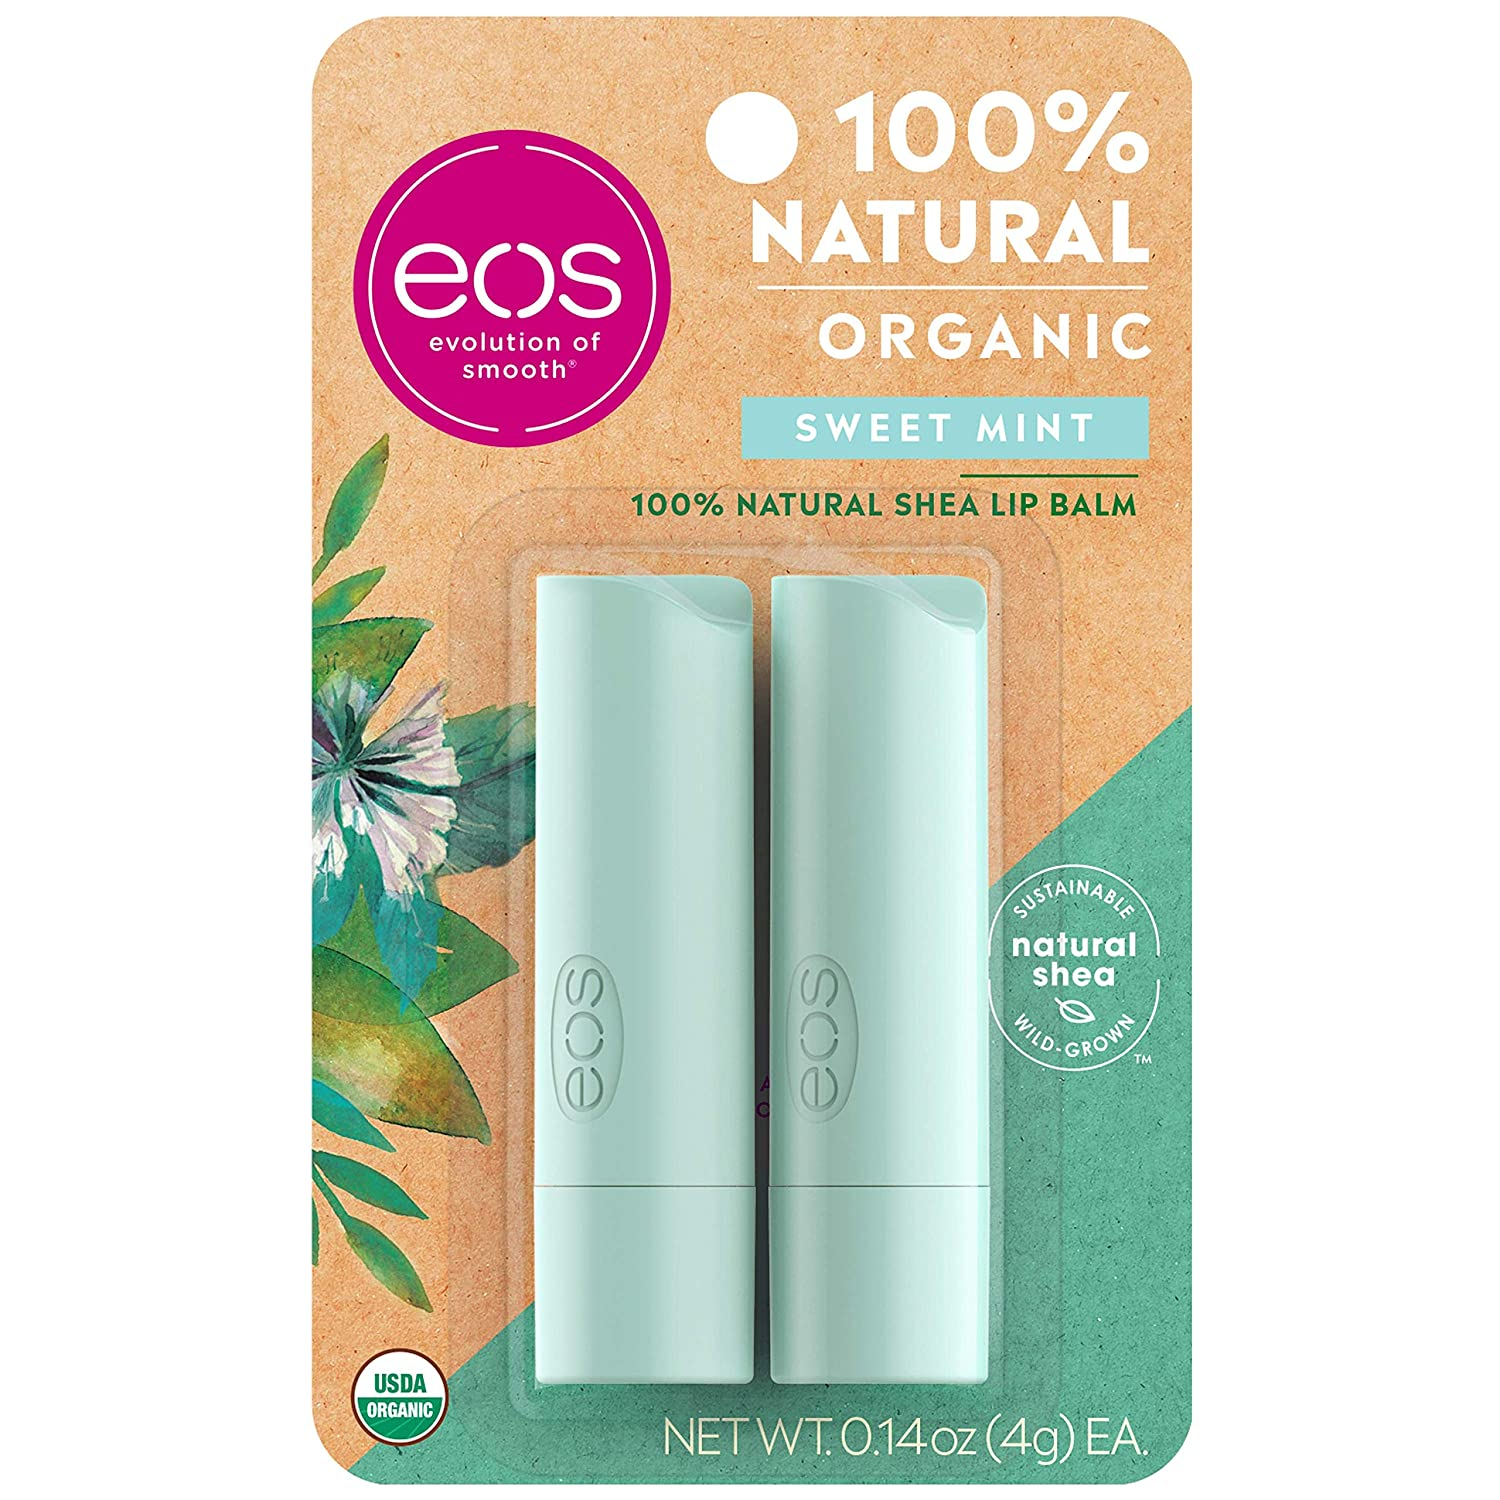 eos USDA Organic Lip Balm - Sweet Mint | Lip Care to Moisturize Dry Lips | 100% Natural and Gluten Free | Long Lasting Hydration | 0.14 oz | 2 Pack